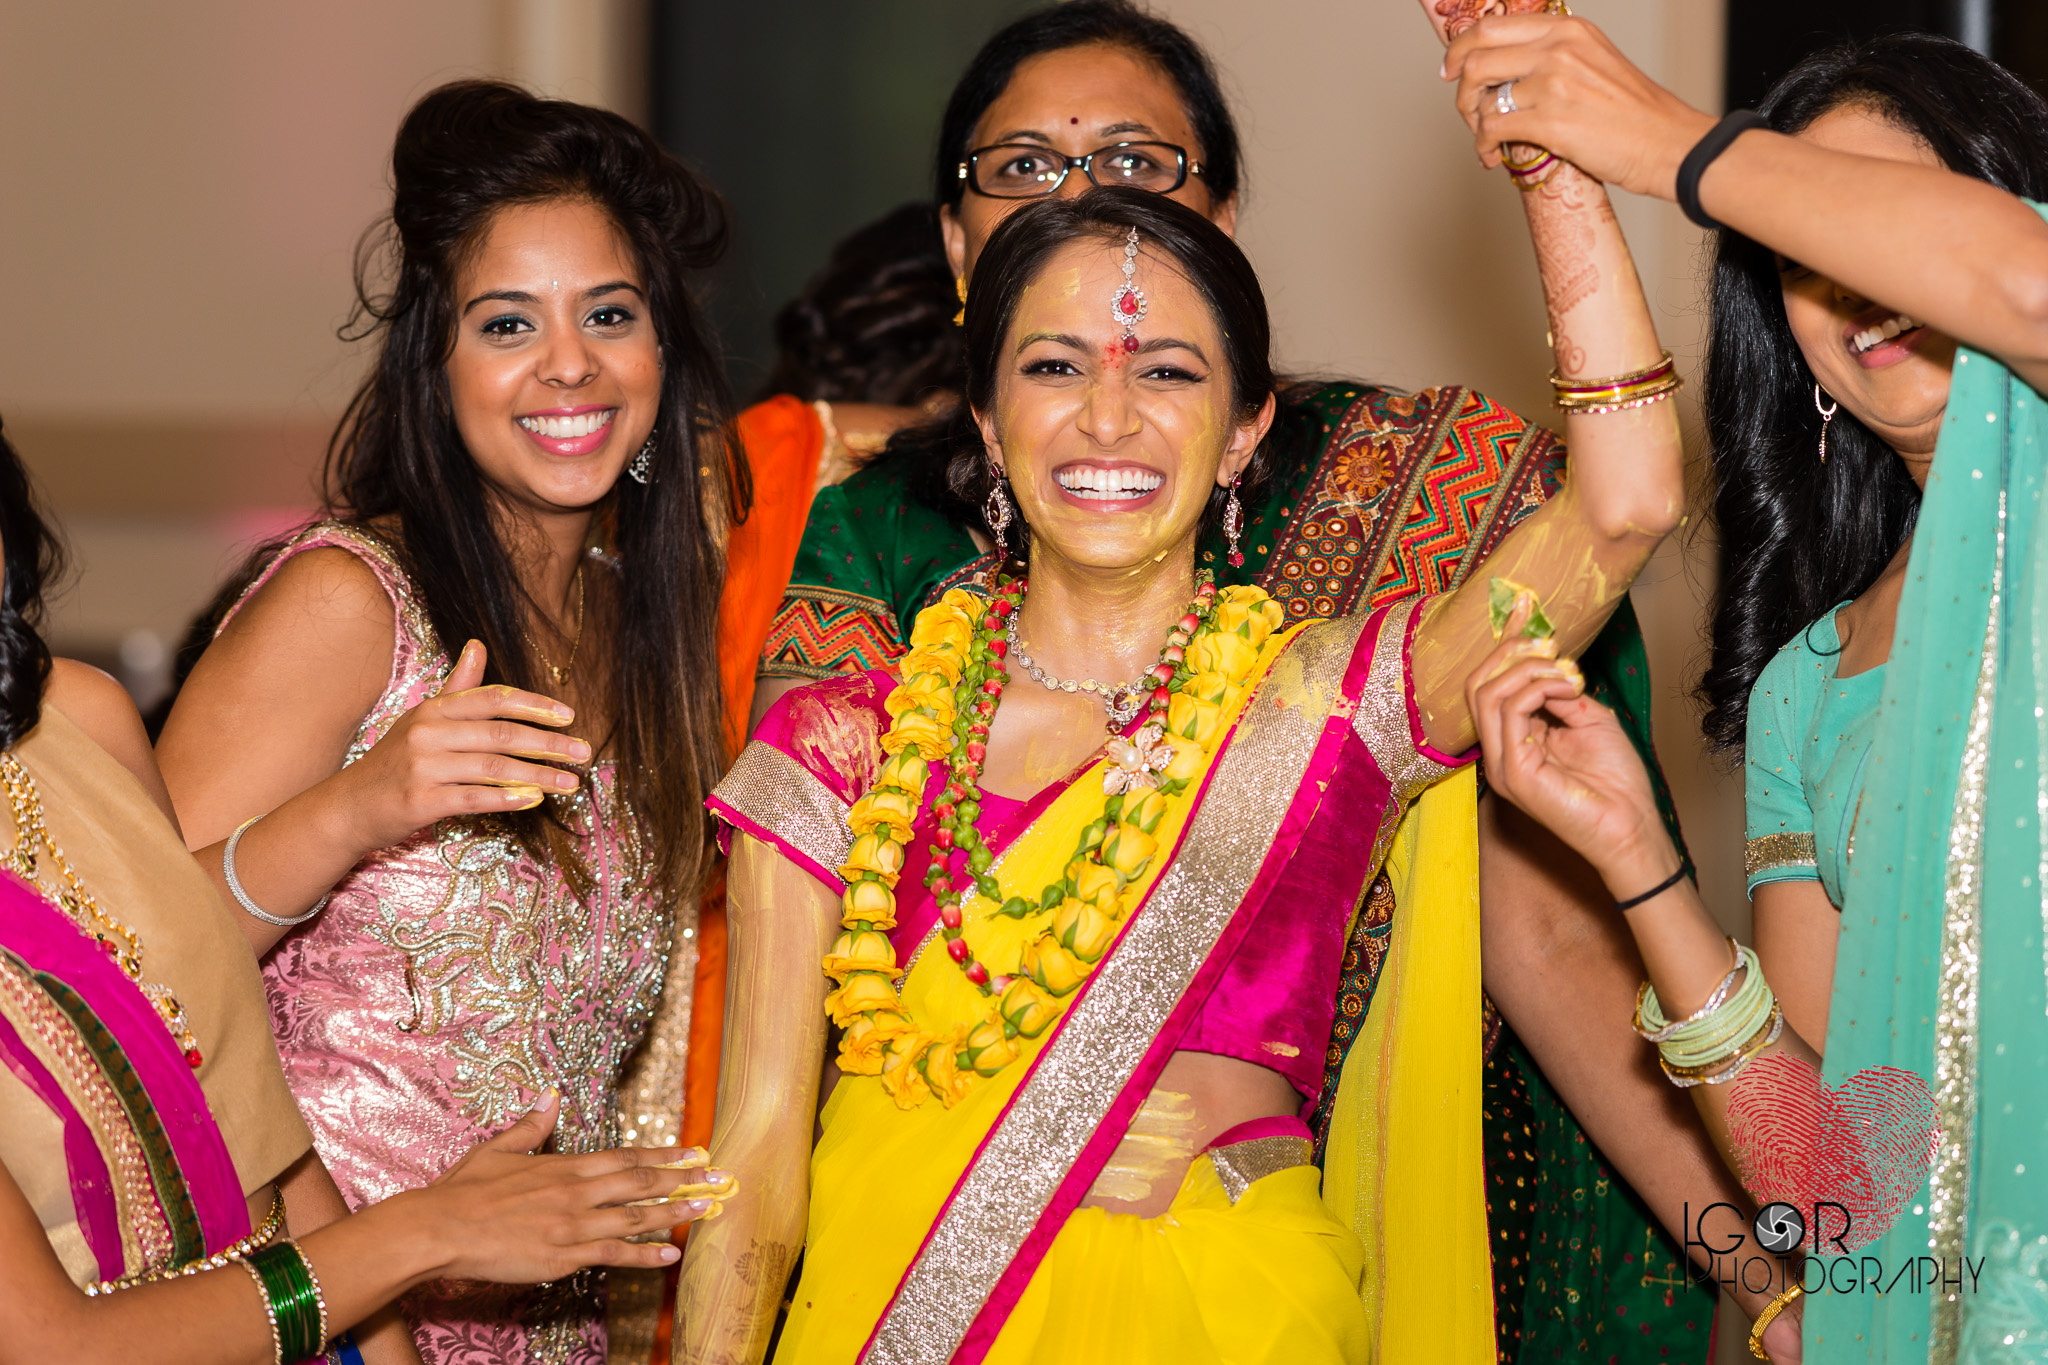 Rachna-Prasad-Indian-Wedding-24.jpg